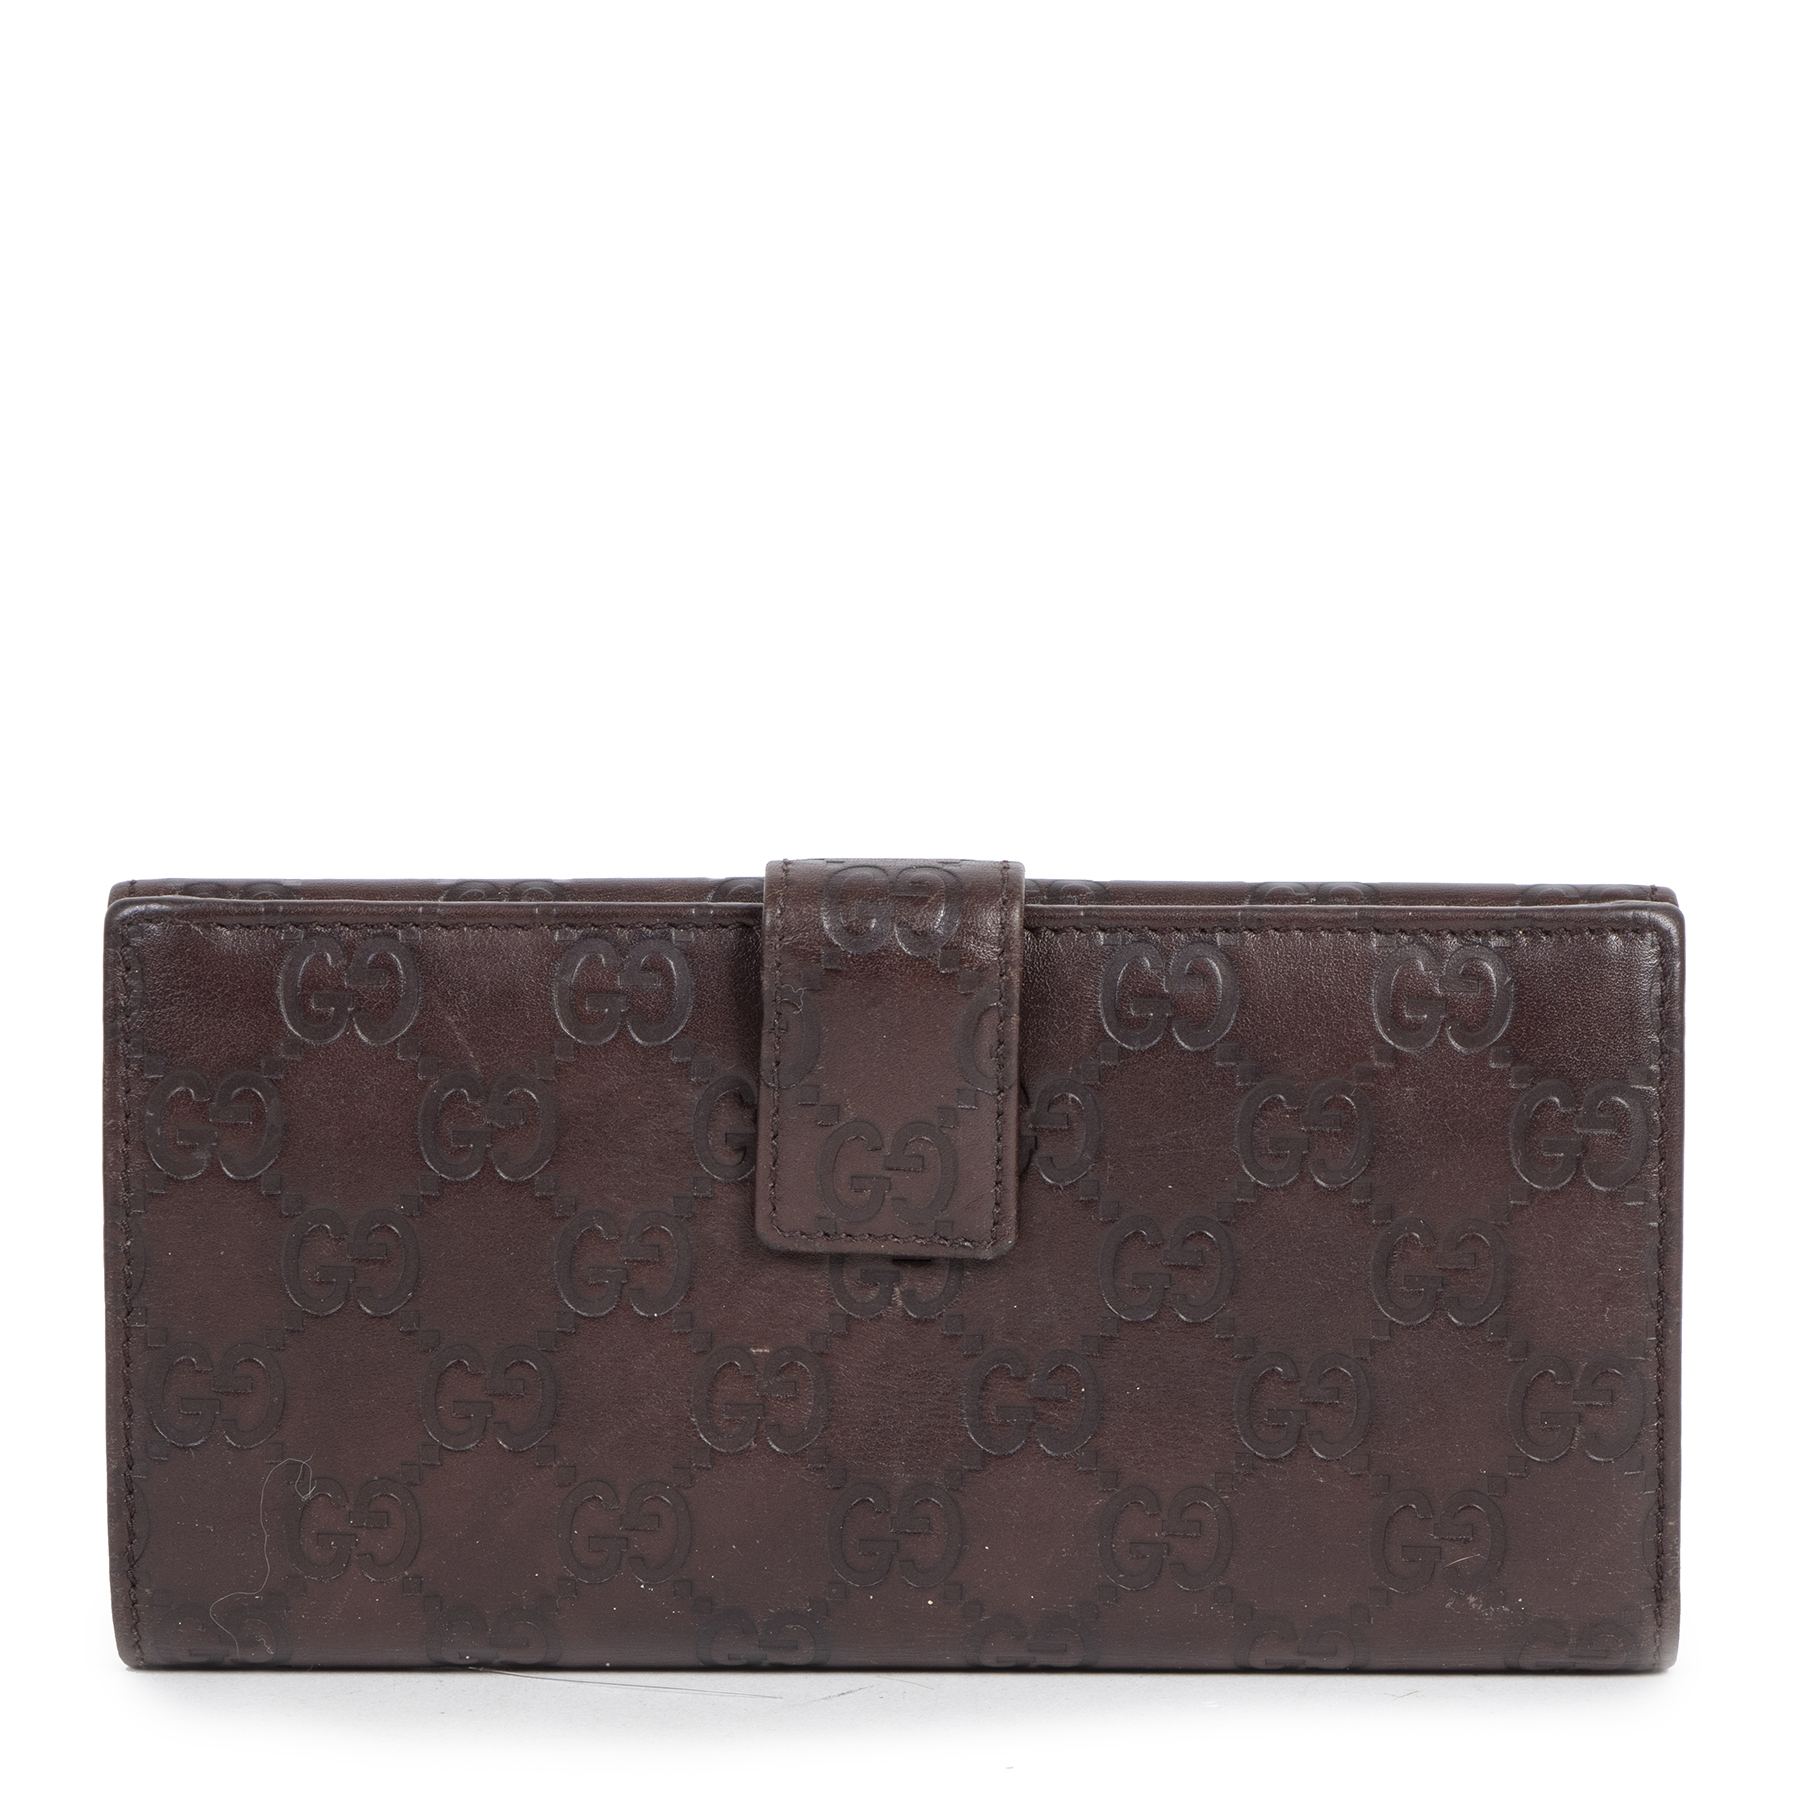 Buy authentic secondhand Gucci Shima GG Logo Brown Leather Long Wallet  at the right price at LabelLOV vintage webshop. Safe and secure online shopping. Koop authentieke tweedehands Gucci Shima GG Logo Brown Leather Long Wallet  met de juiste prijs bij La